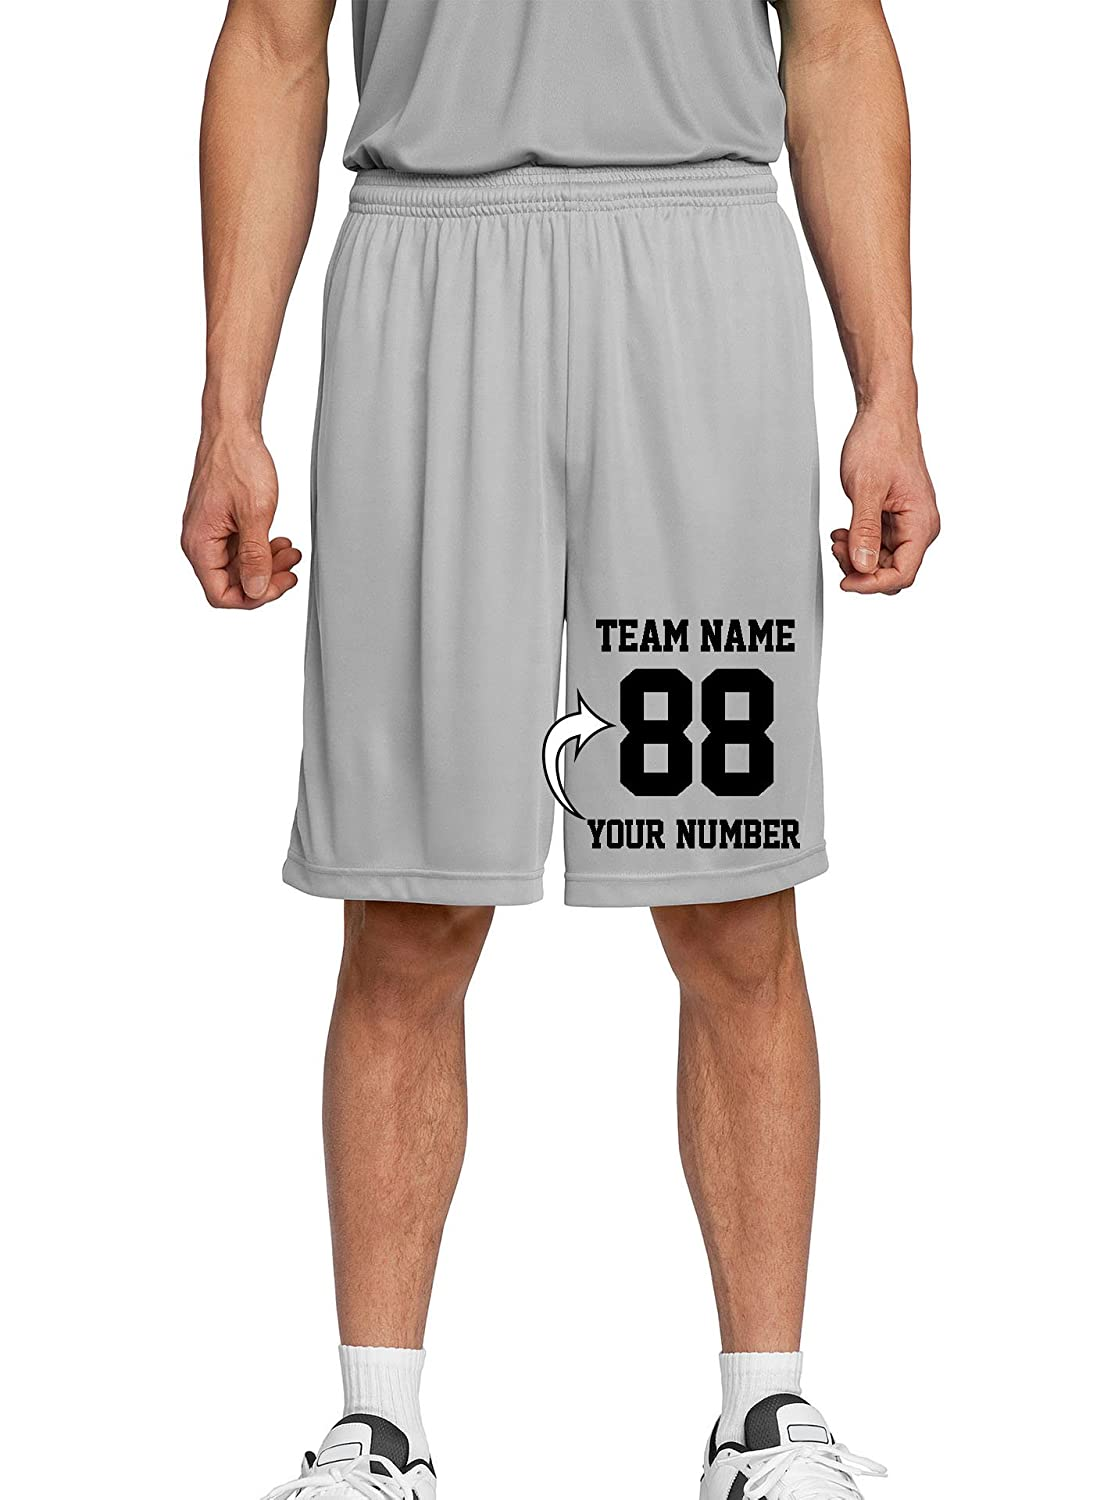 Personalized Team Uniforms TMST35502 Tee Miracle Custom Adult /& Youth Basketball Shorts Make Your Own Short